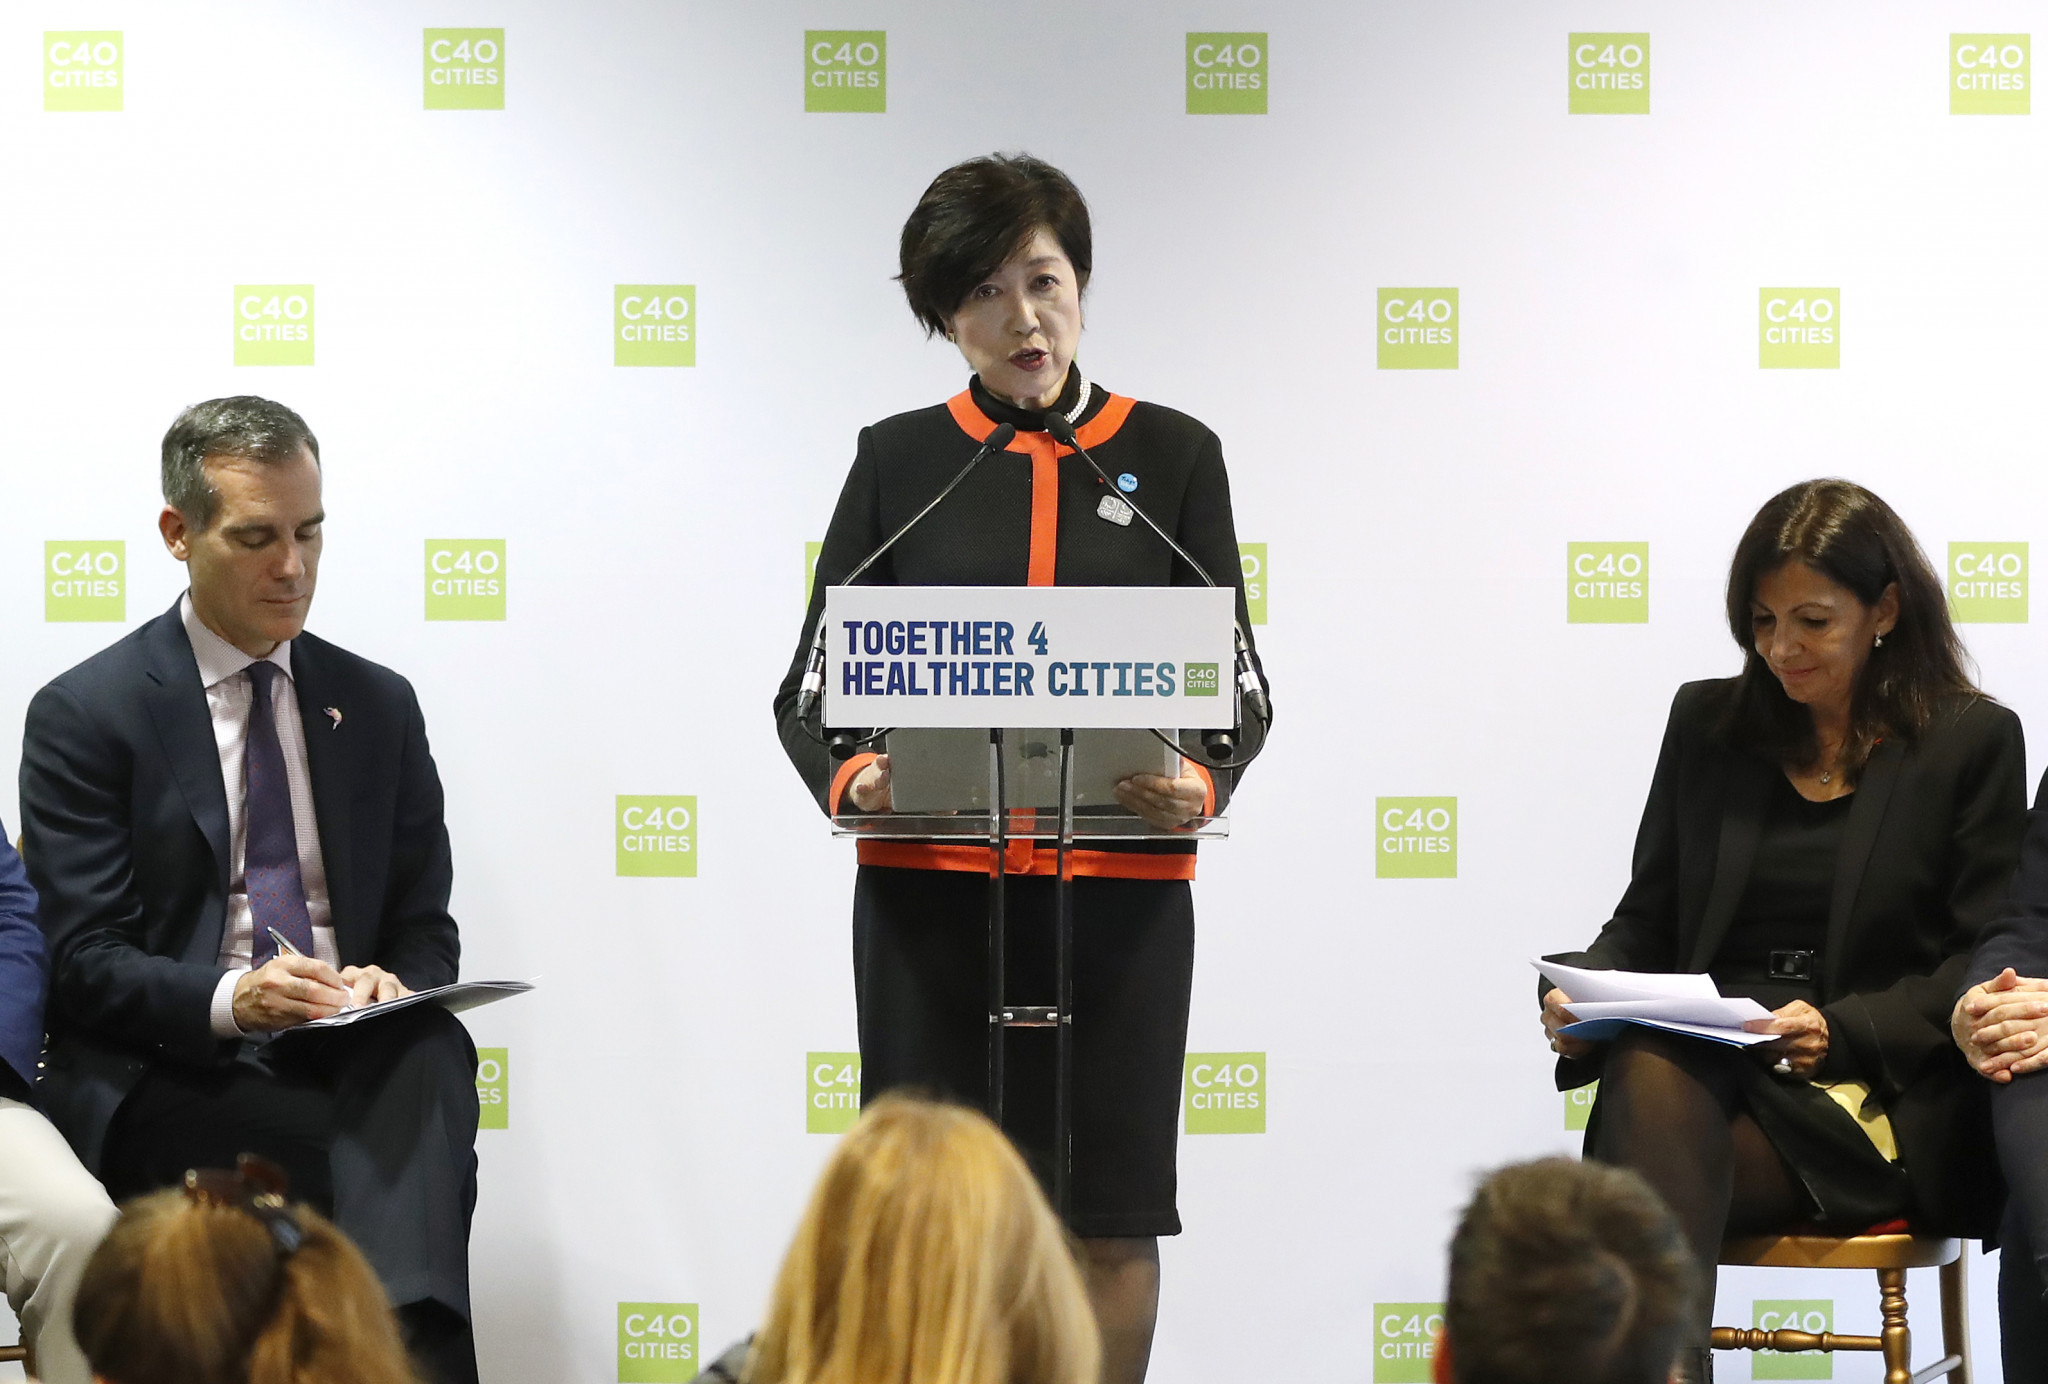 Yuriko Koike, centre, and Anne Hidalgo, right, said the Tokyo 2020 Olympics have helped provide hope amid the COVID-19 recovery ©Getty Images